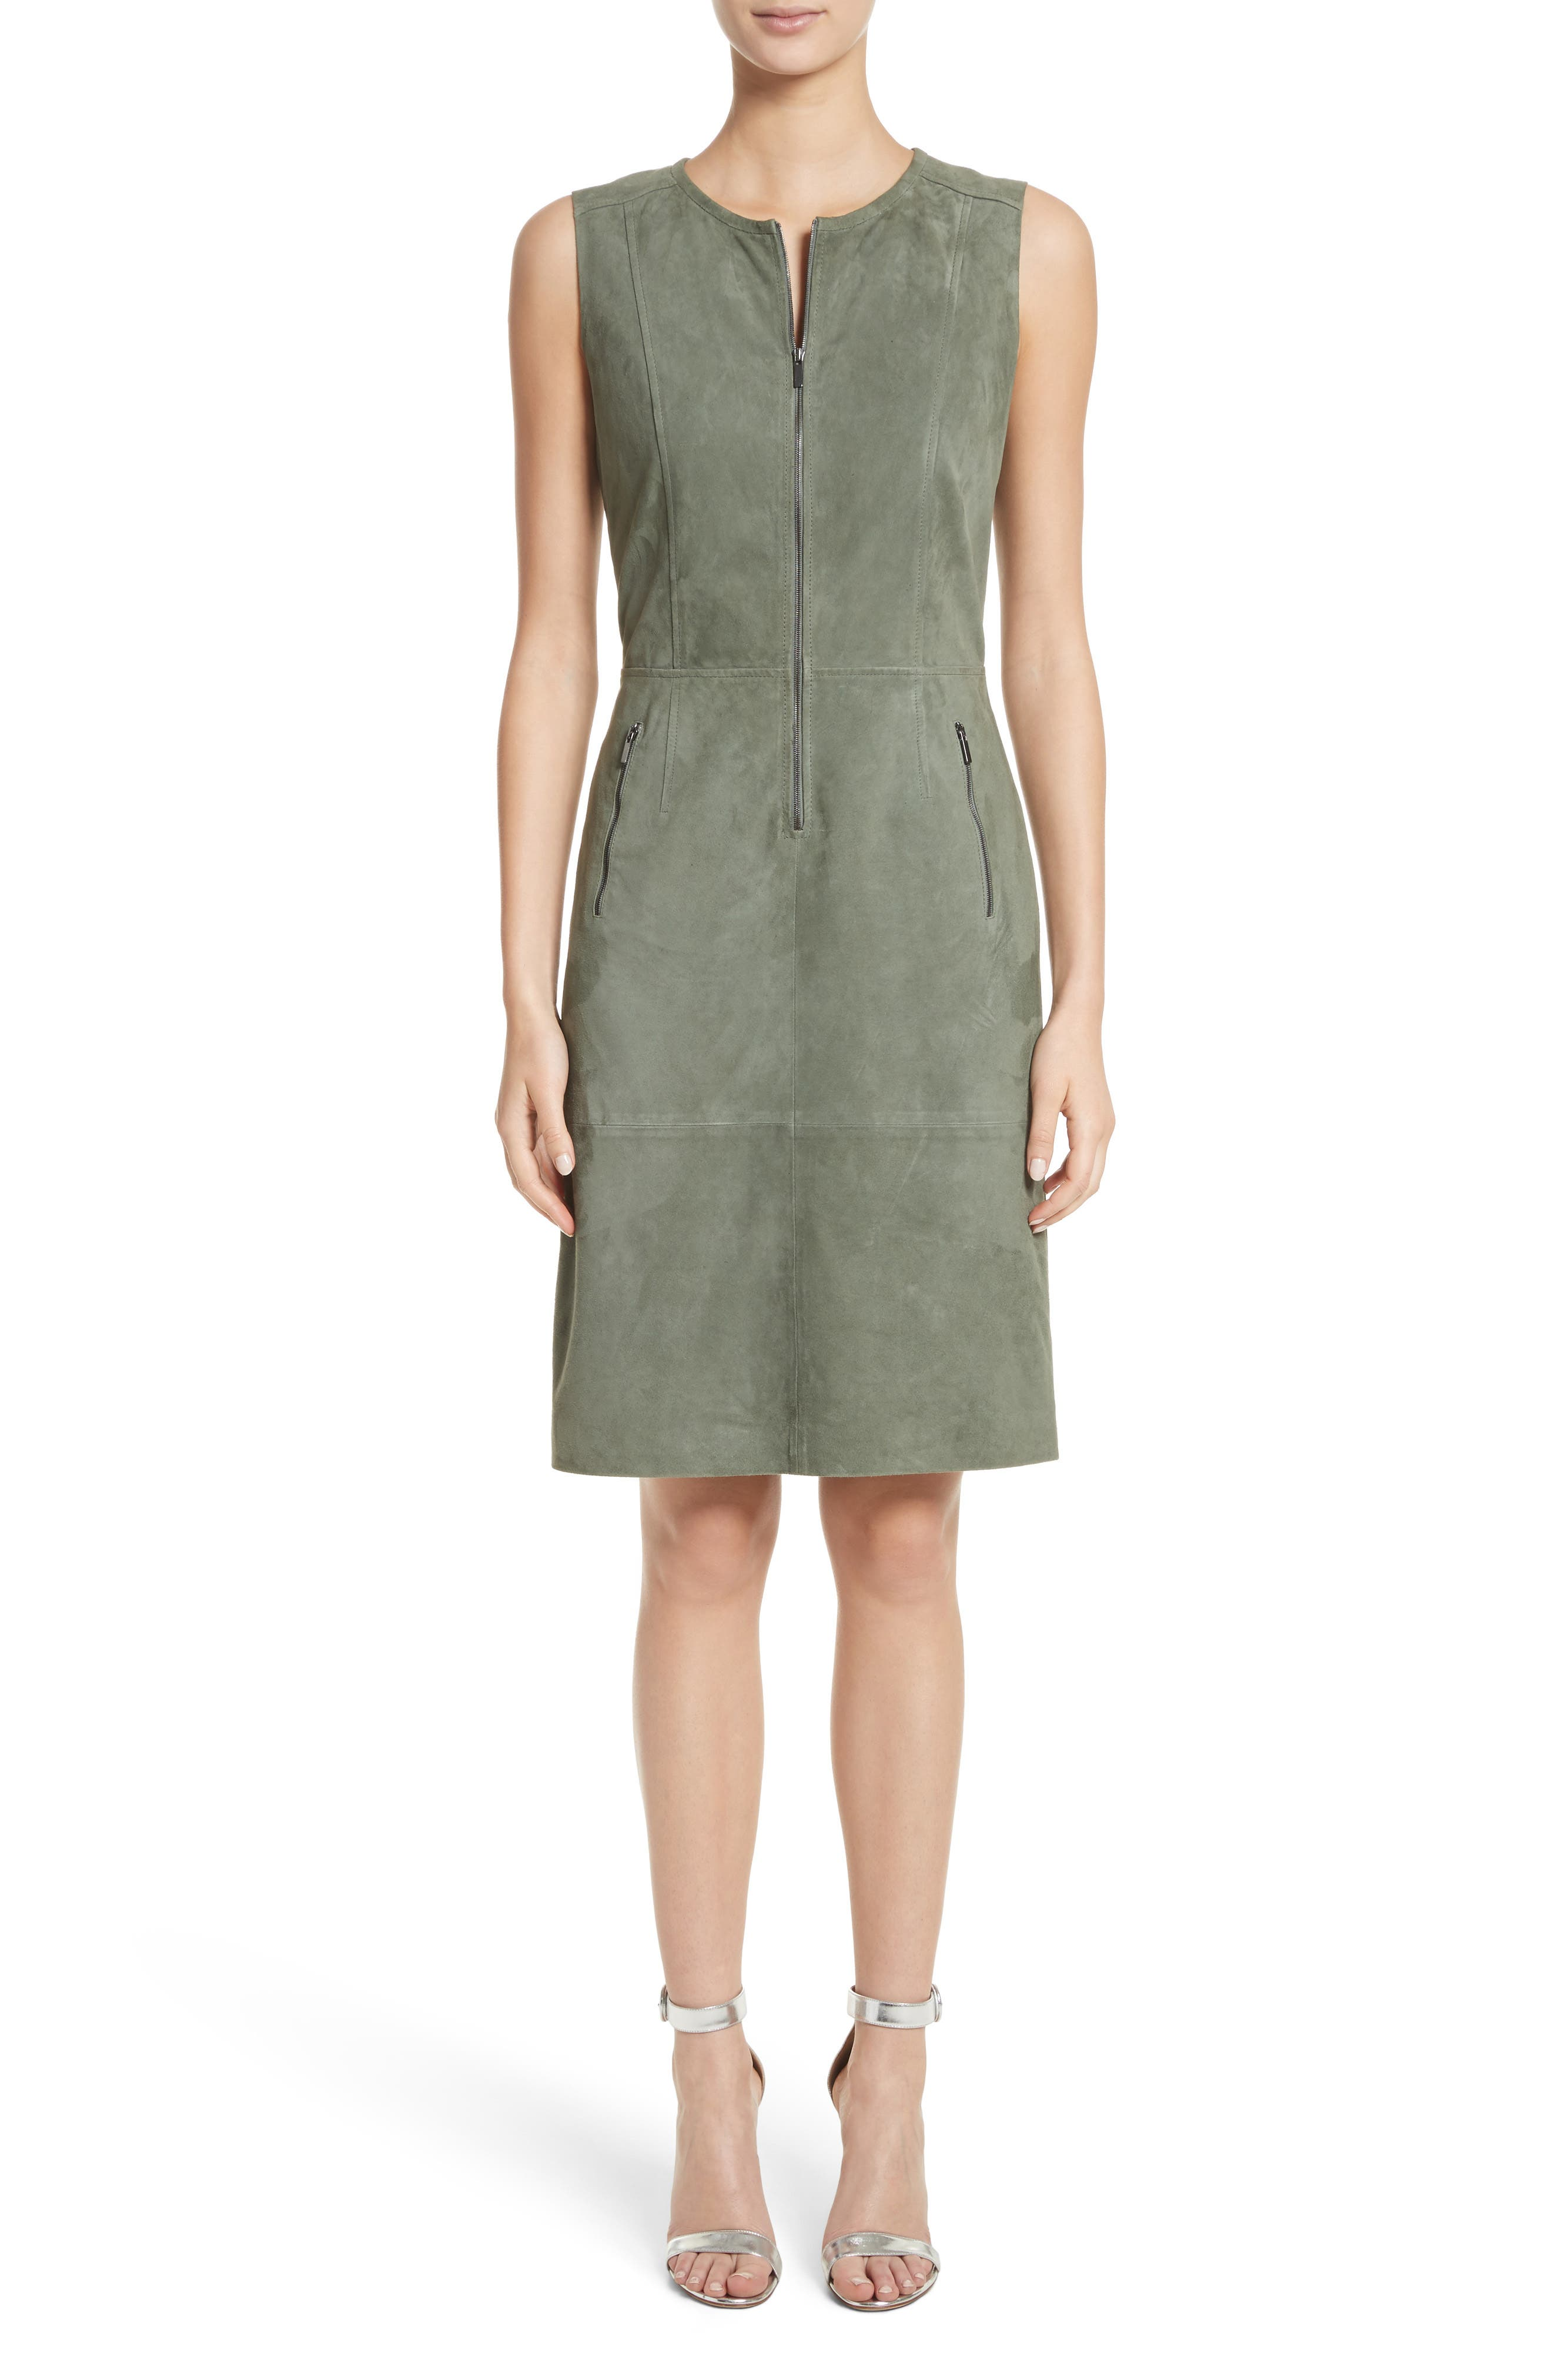 Alternate Image 1 Selected - St. John Collection Suede Dress